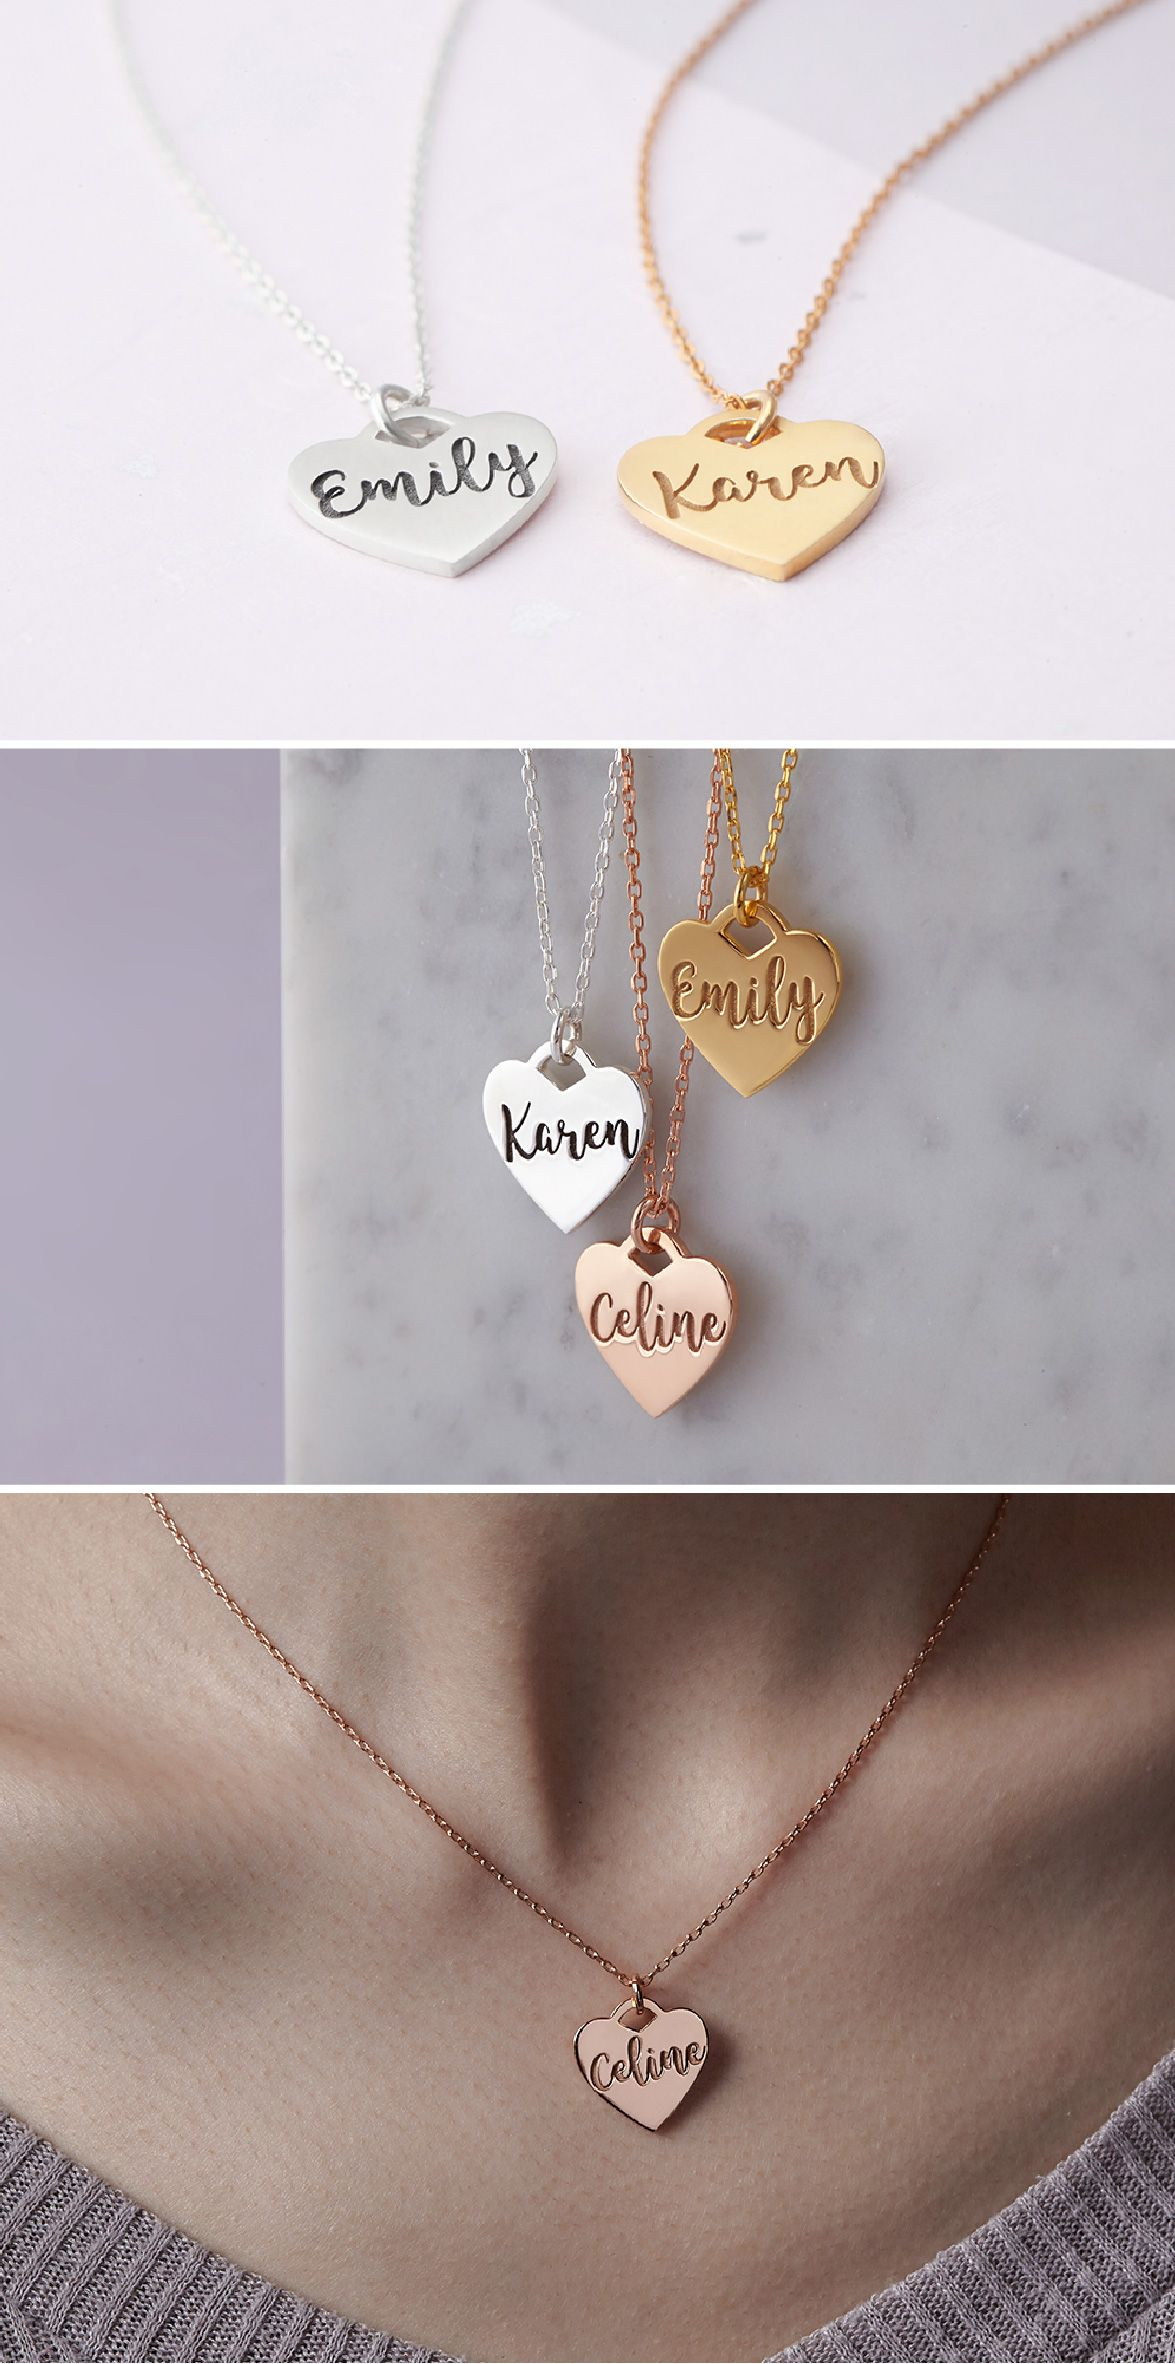 f807d6310 Personalized Cursive Name Necklace • Custom Name Necklace Silver • Engraved  Heart Name Necklace • Gold Necklace With Name • Personalized Name Necklace  Gold ...